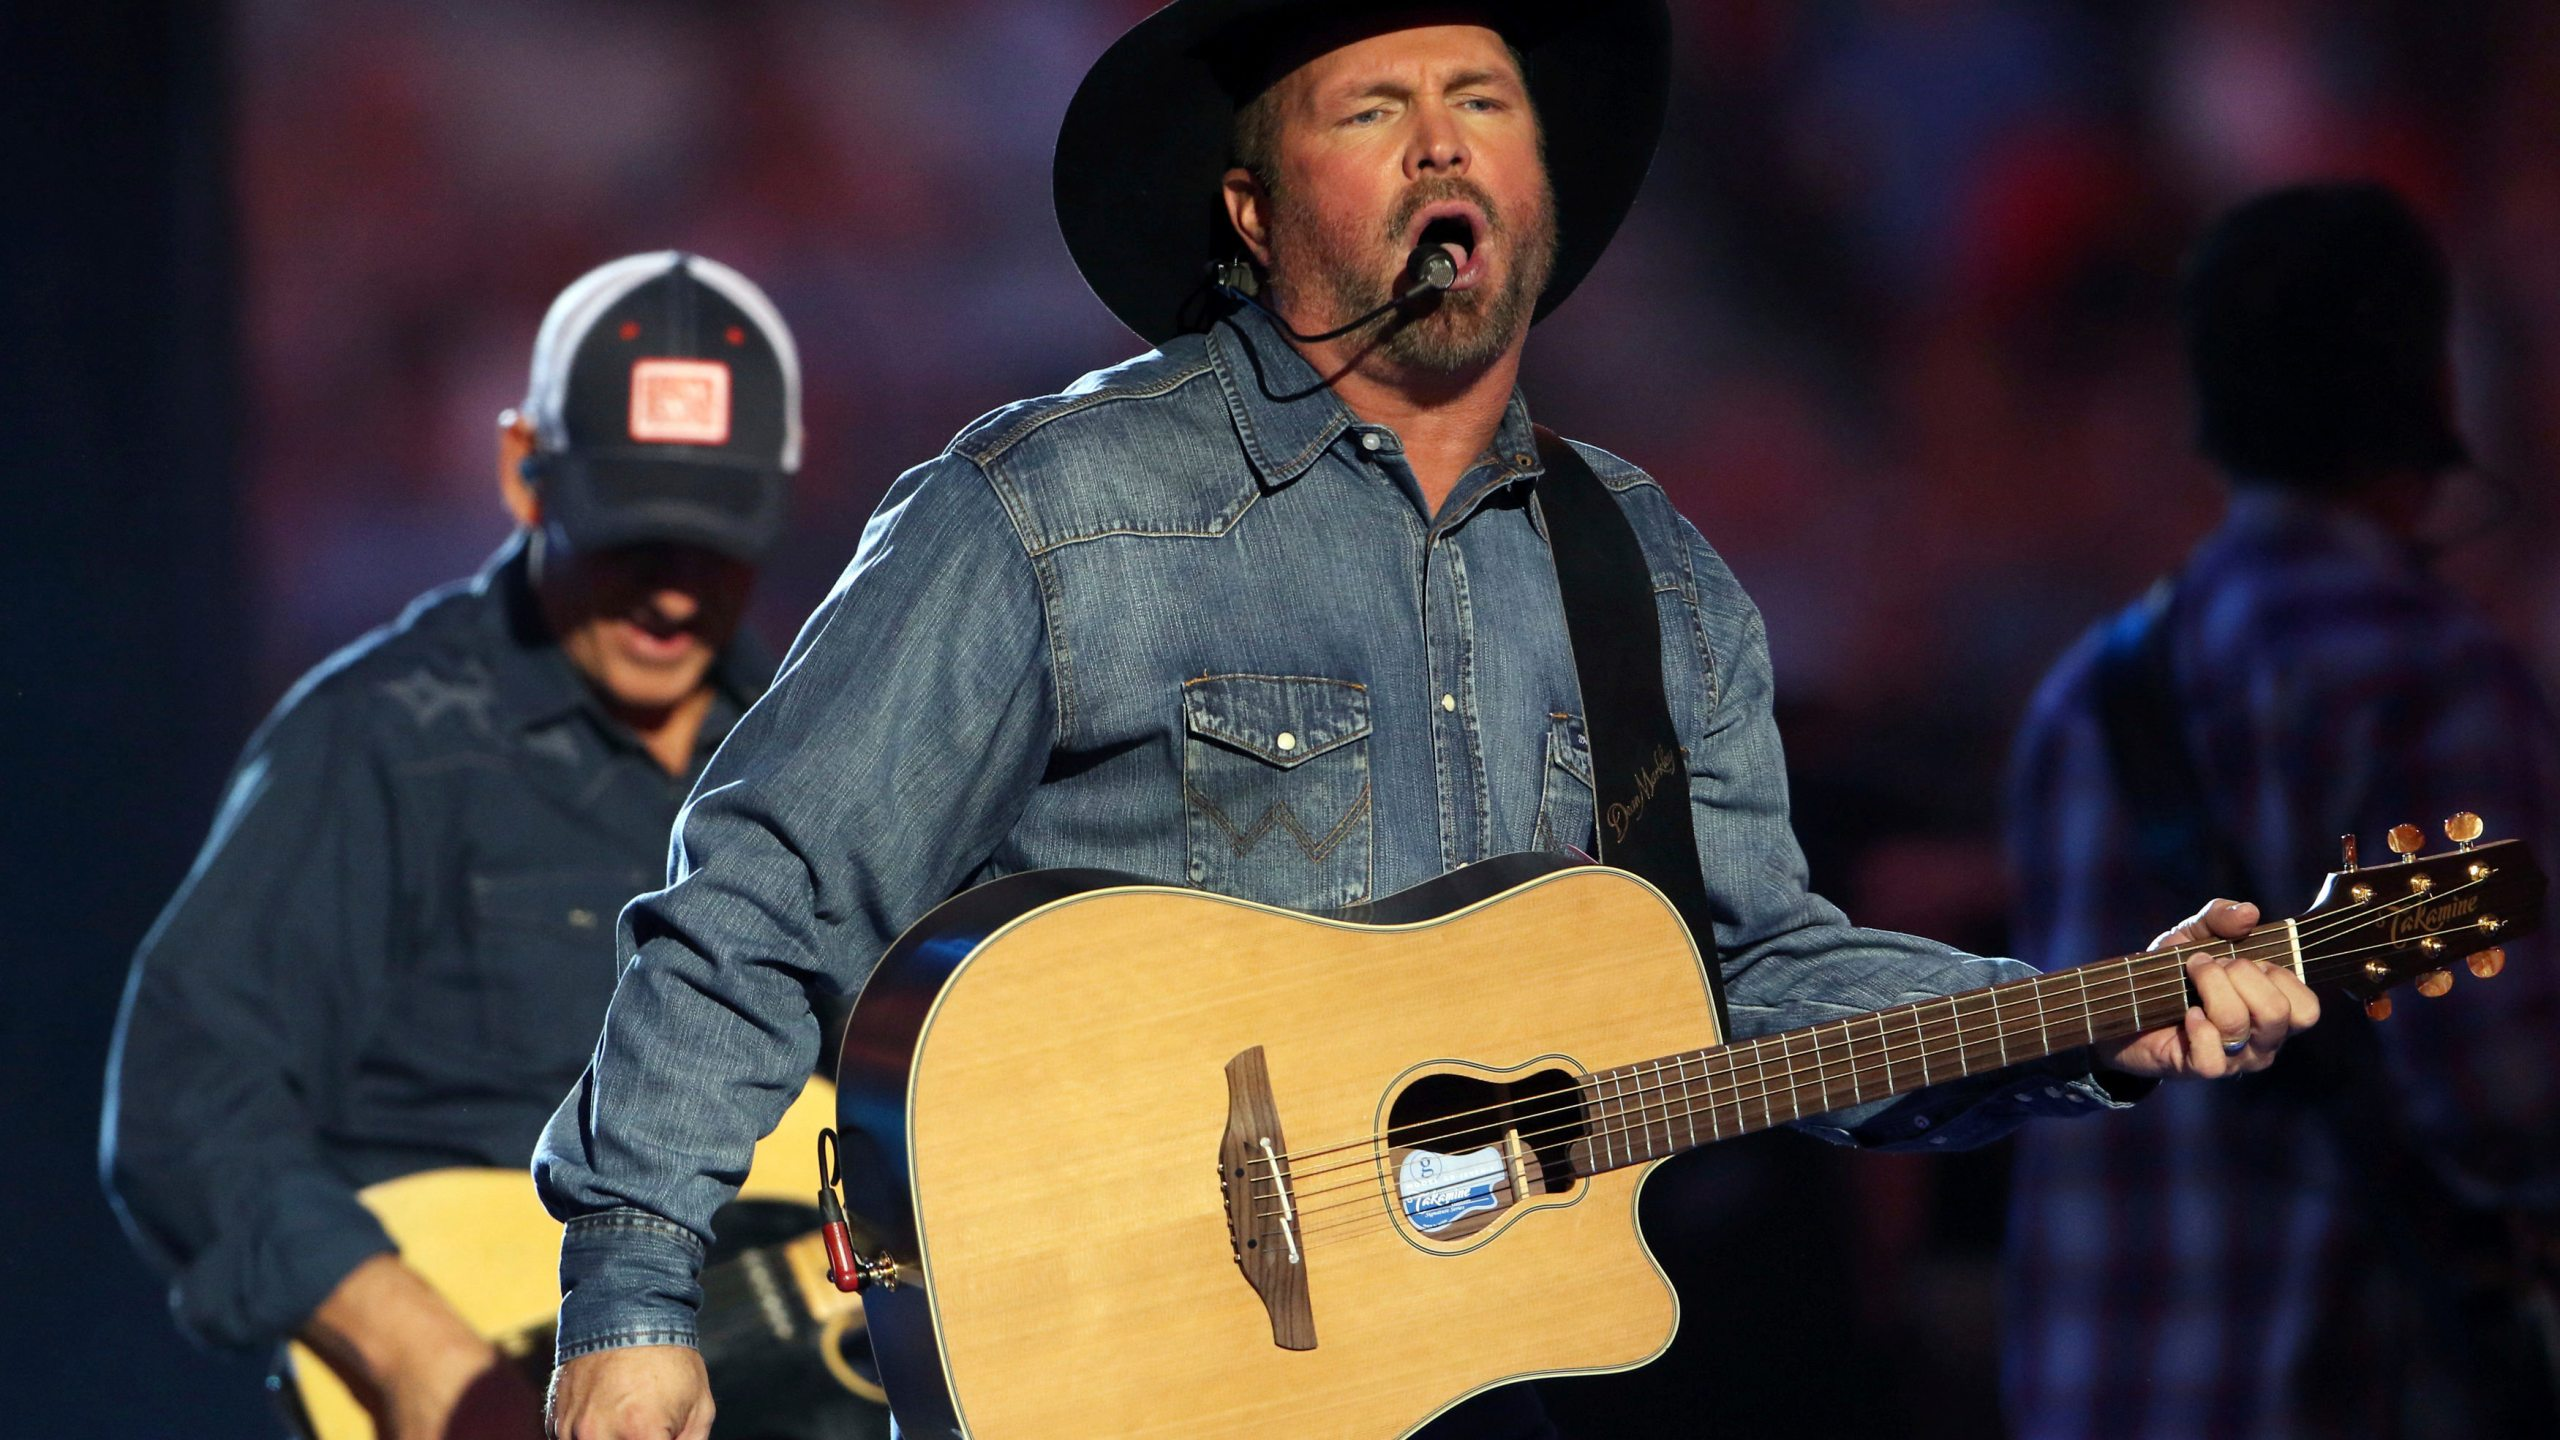 Garth Brooks and musicians perform during the The Garth Brooks World Tour at the Mercedes-Benz Stadium on Thursday, October 12, 2017, in Atlanta. Pho